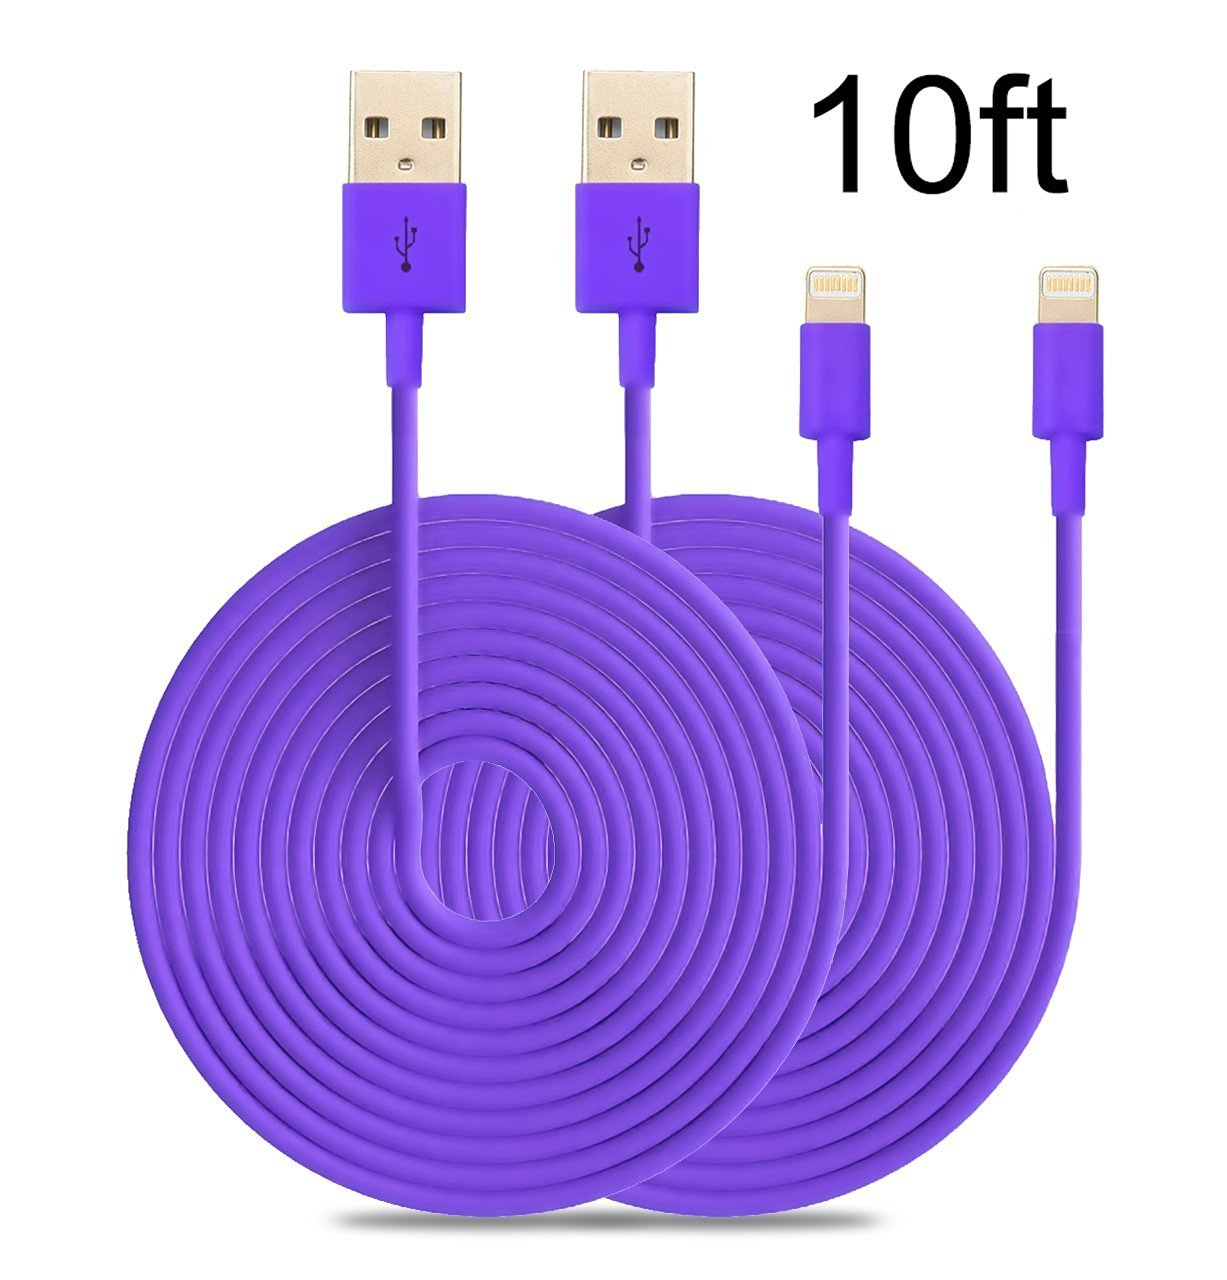 2PCS 6FT USB SYNC DATA POWER CHARGER CABLES IPAD IPHONE IPOD CLASSIC NANO PURPLE